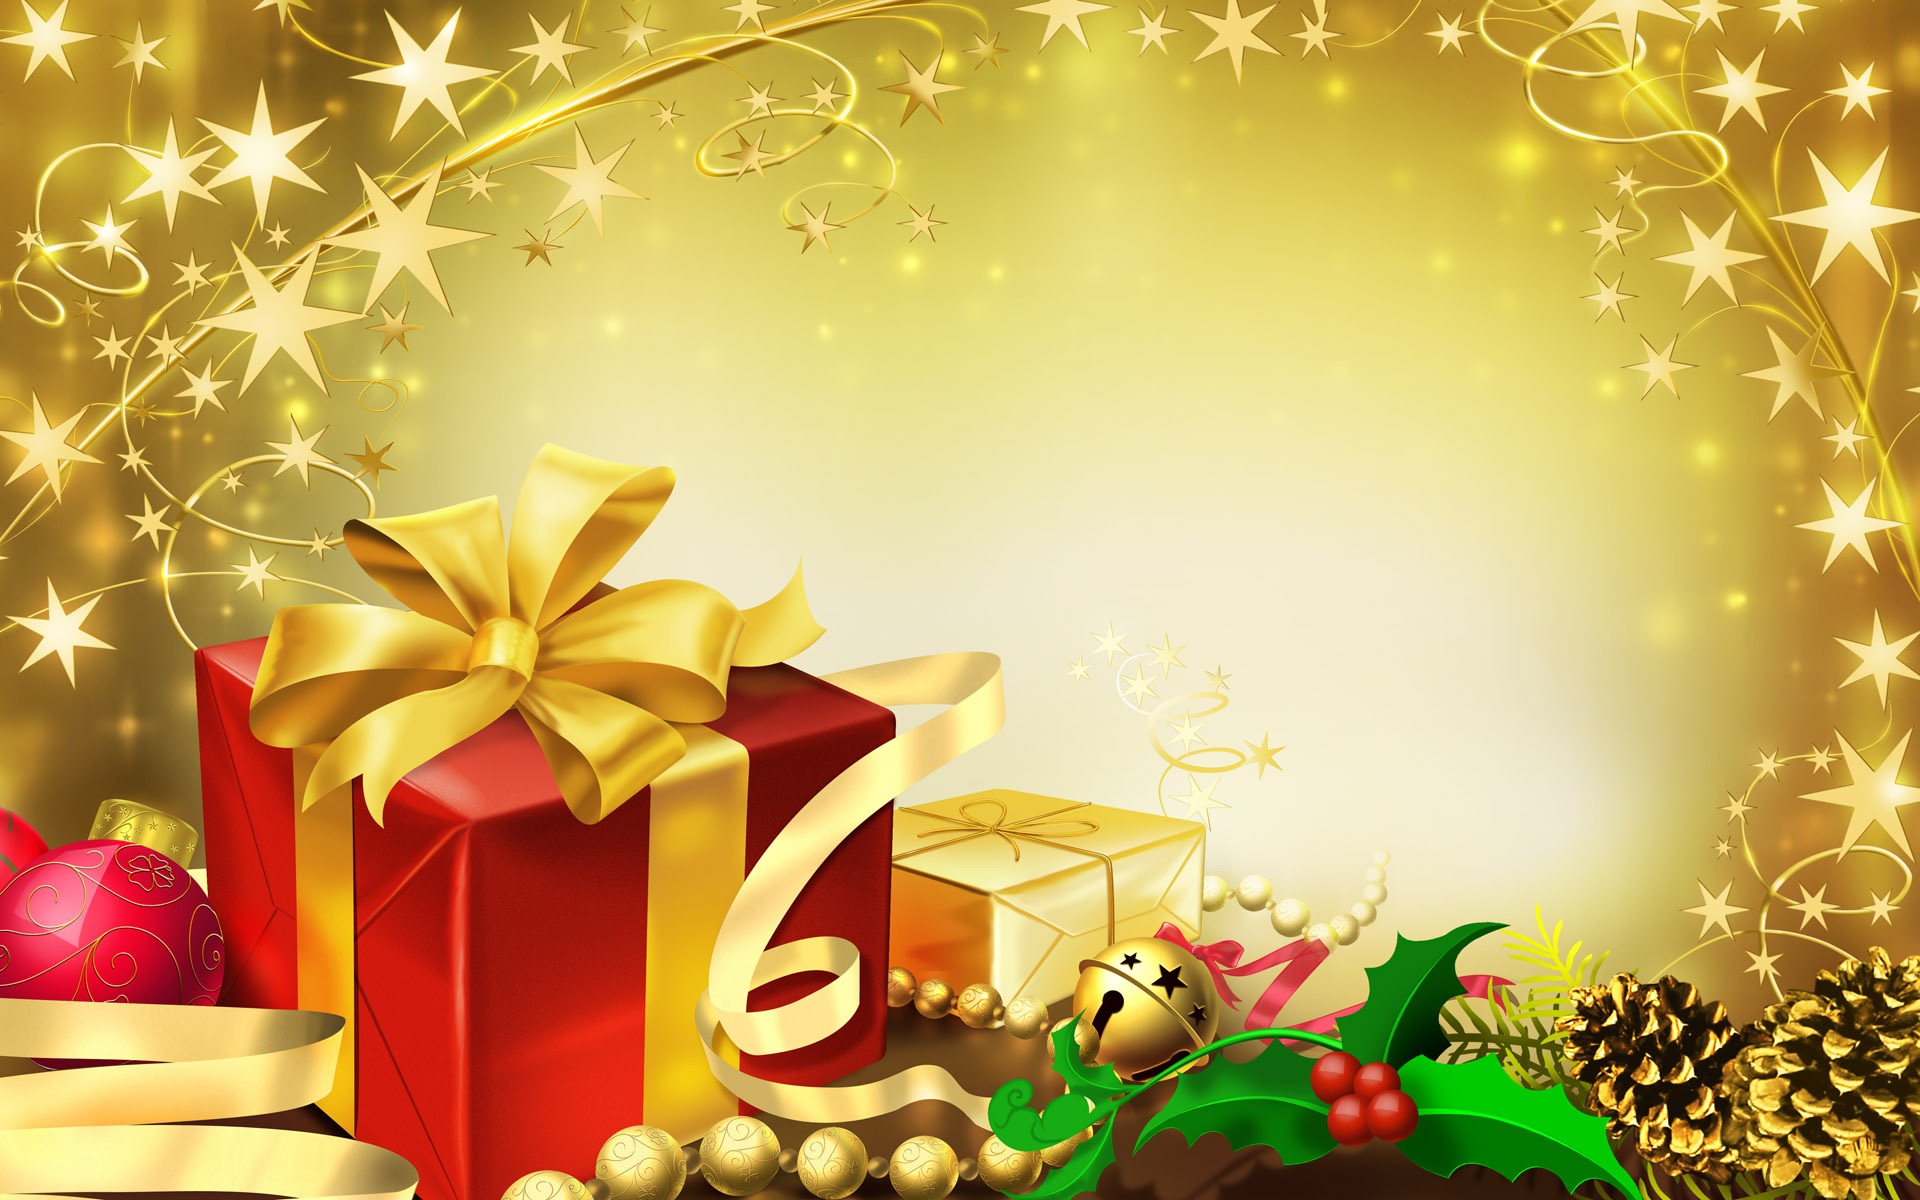 HD Wallpapers Colorful Gifts for Christmas